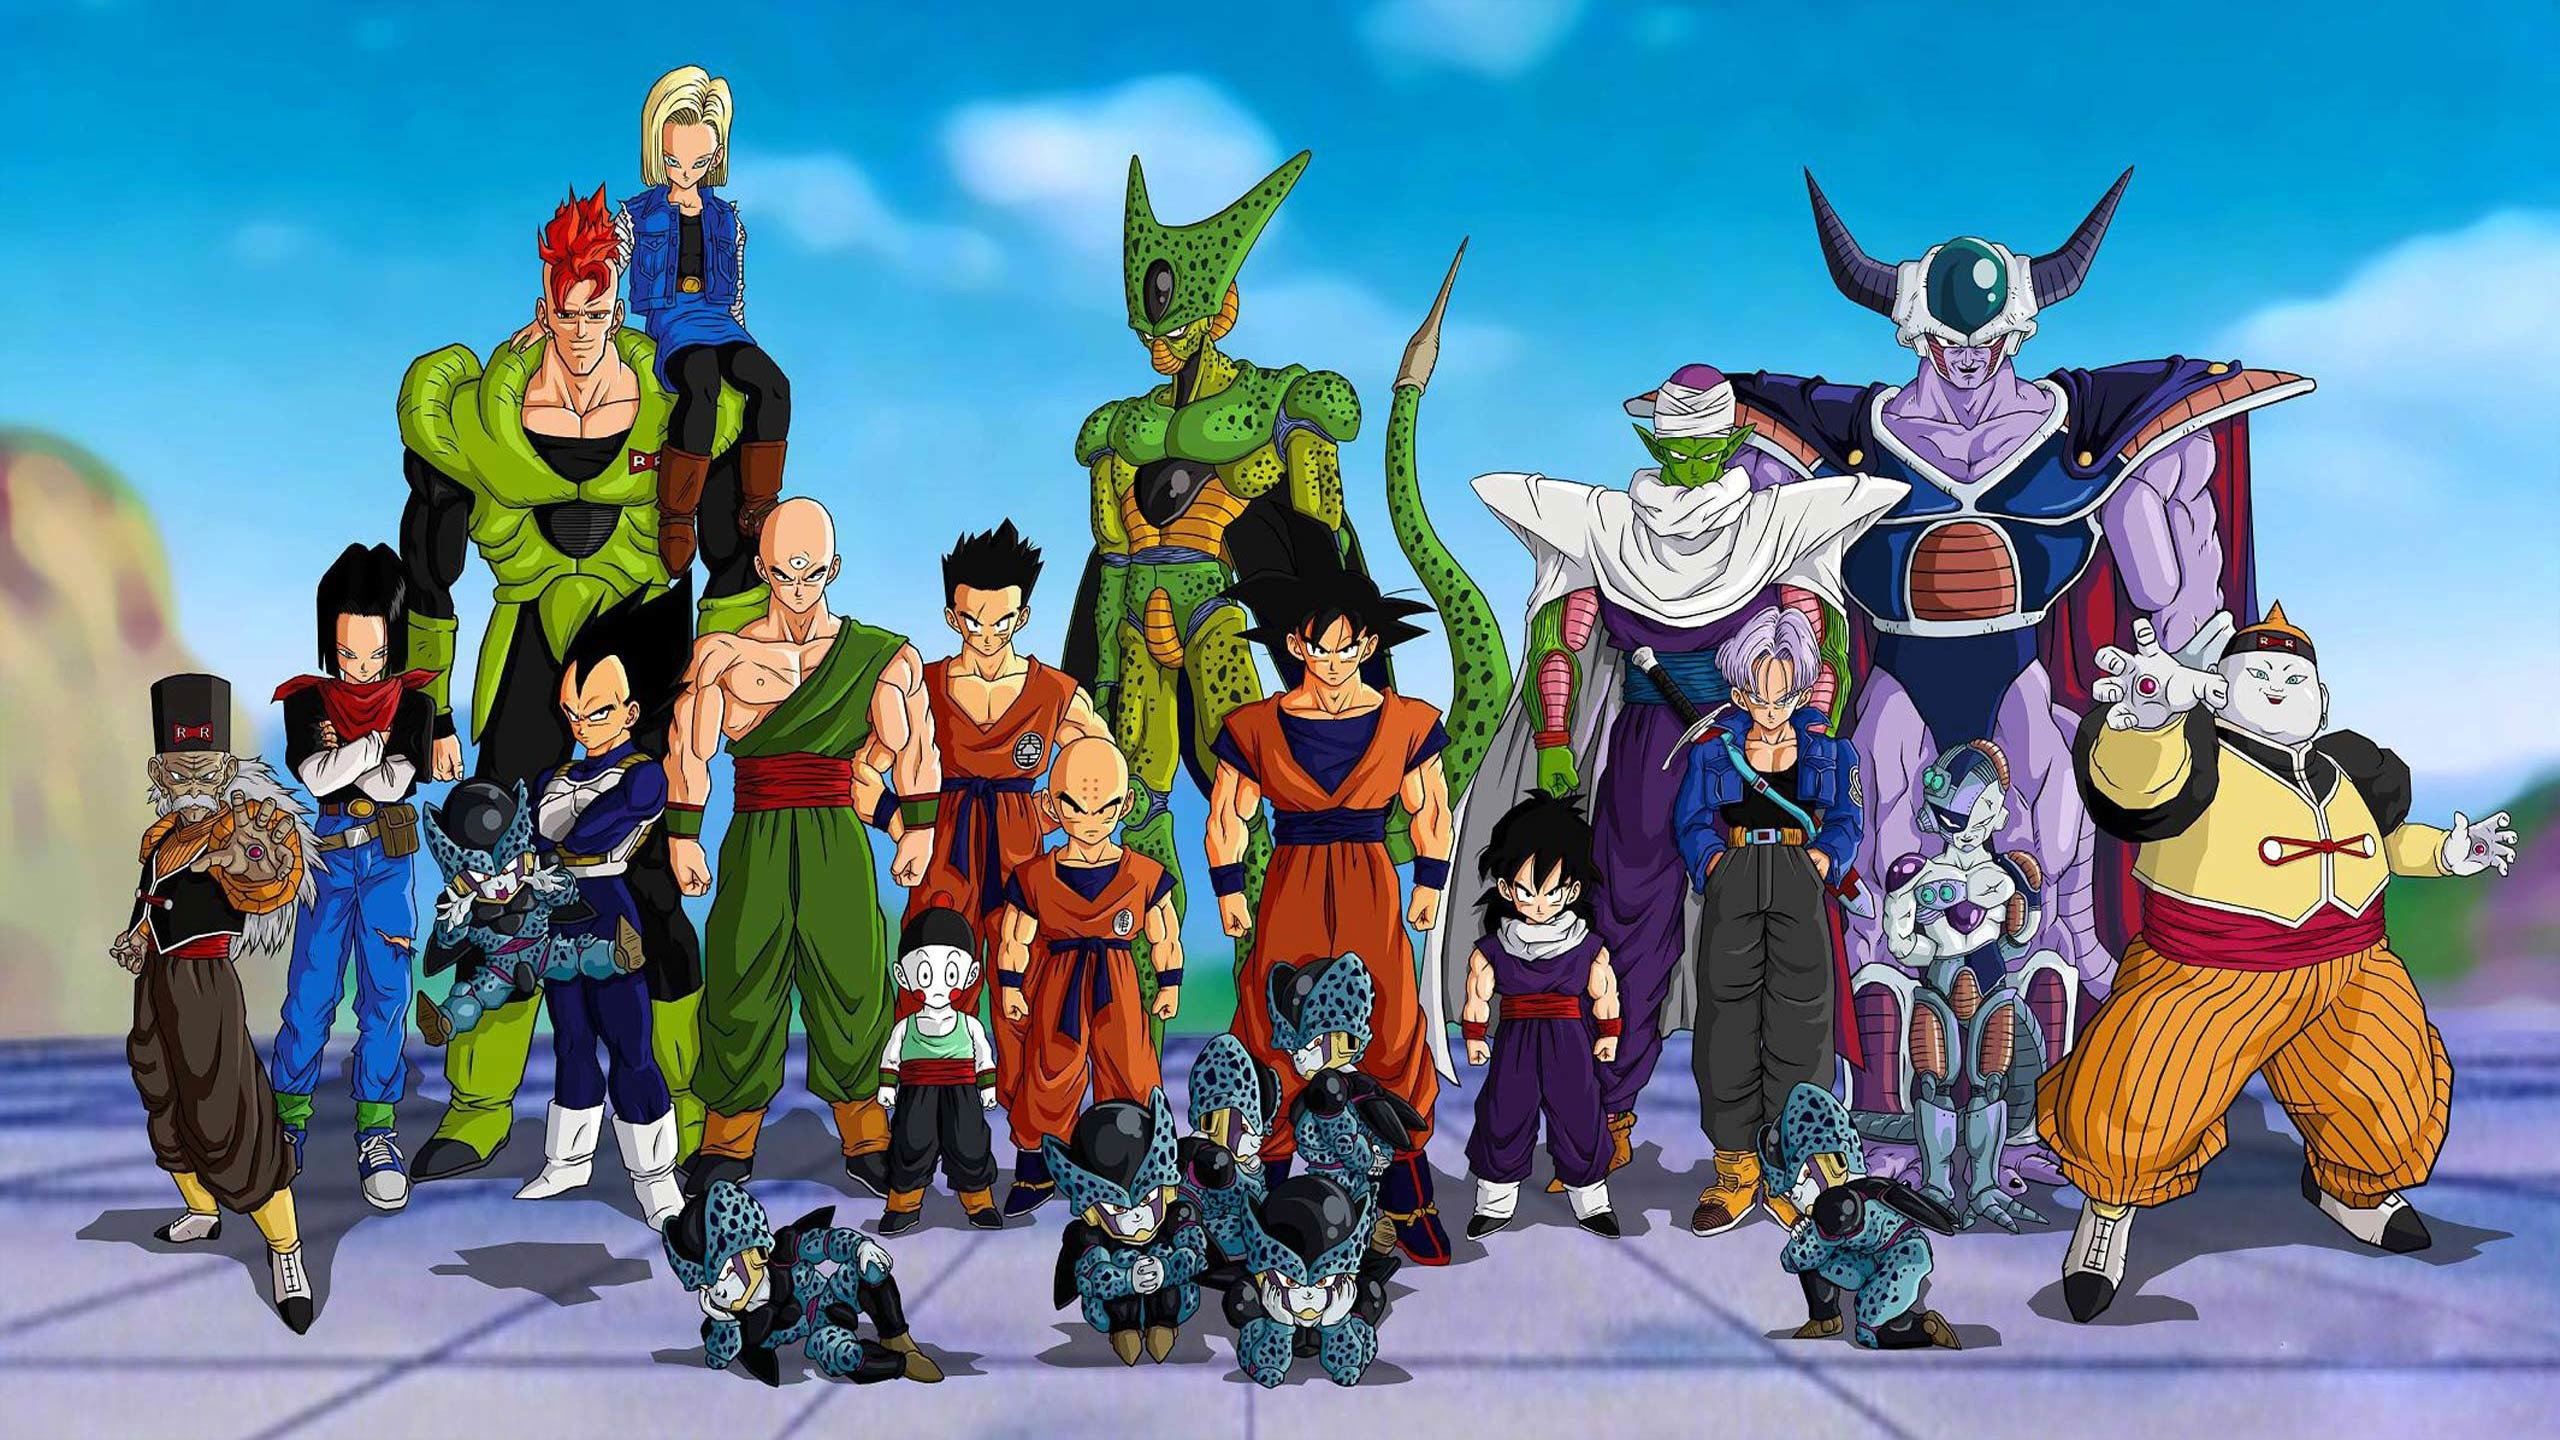 2560x1440 Dragon Ball Z DBZ HD Wallpapers, computer desktop wallpapers, pictures,  images